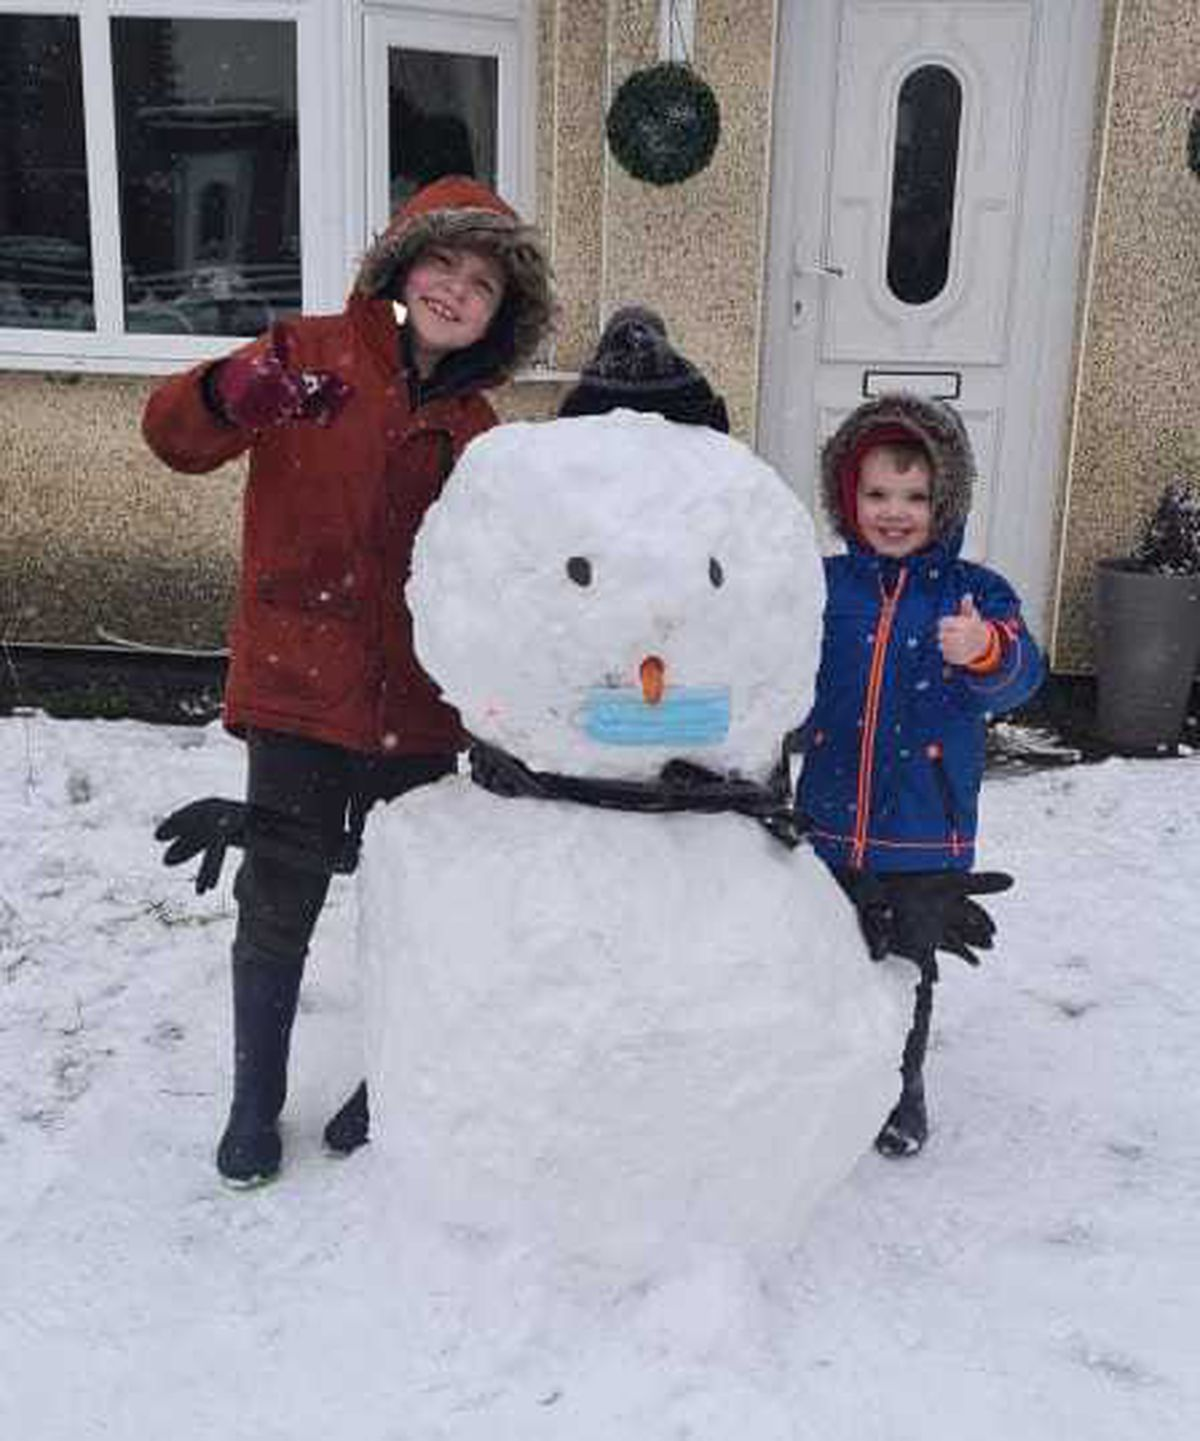 Leah Andrew took this photo of her boy's enjoying the snow after a period of self-isolation due to Covid-19.